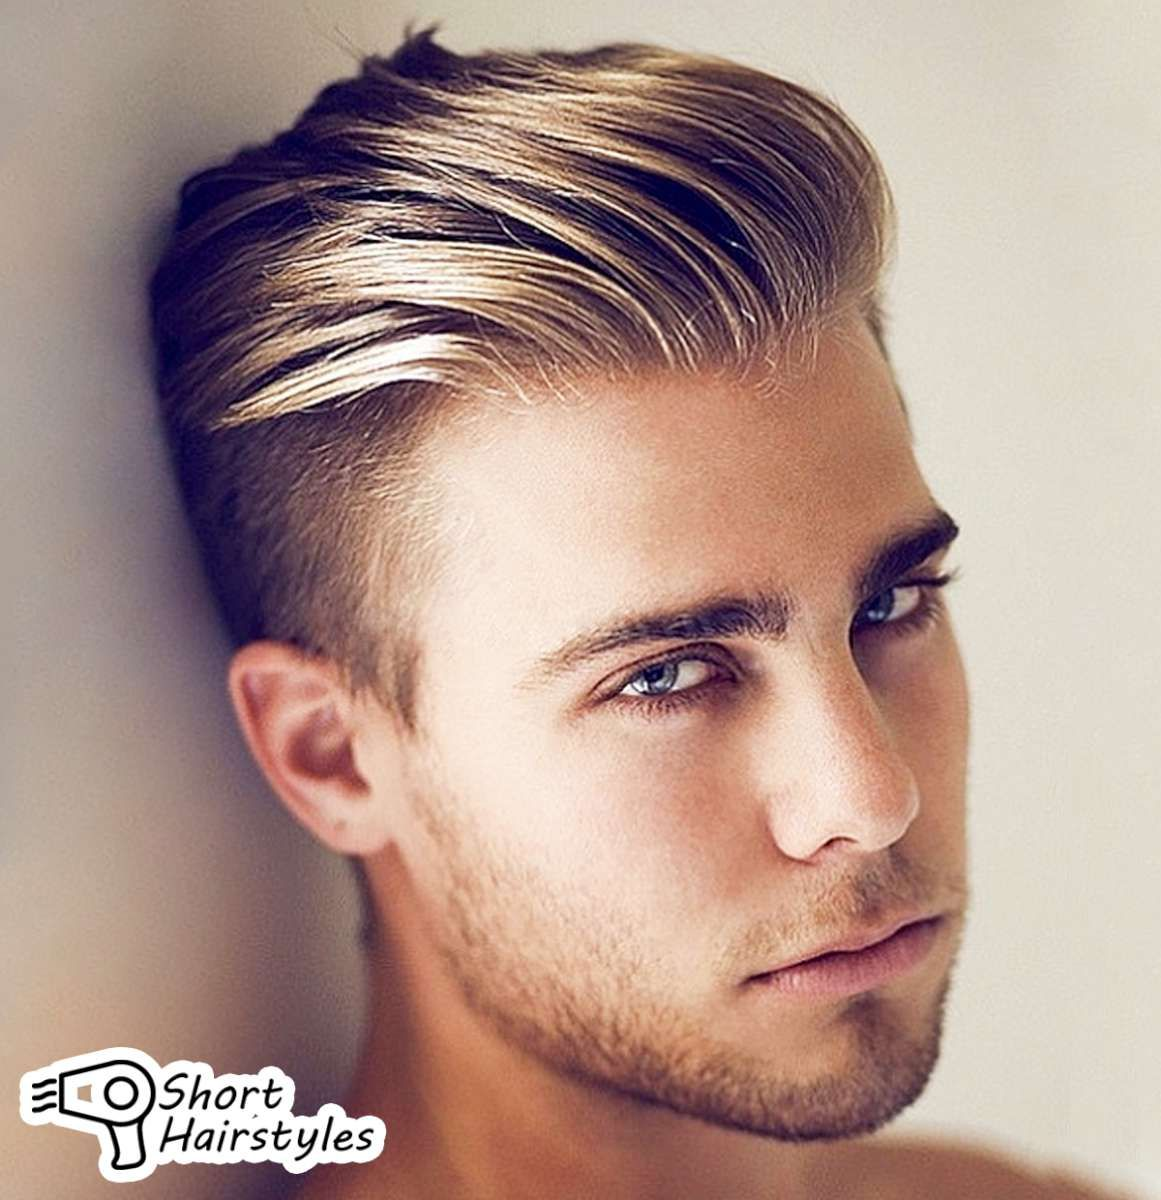 Undercut Men Hairstyle Custom Fashionzwomen Wants To Discuss The Latest Hairstyles For Men That